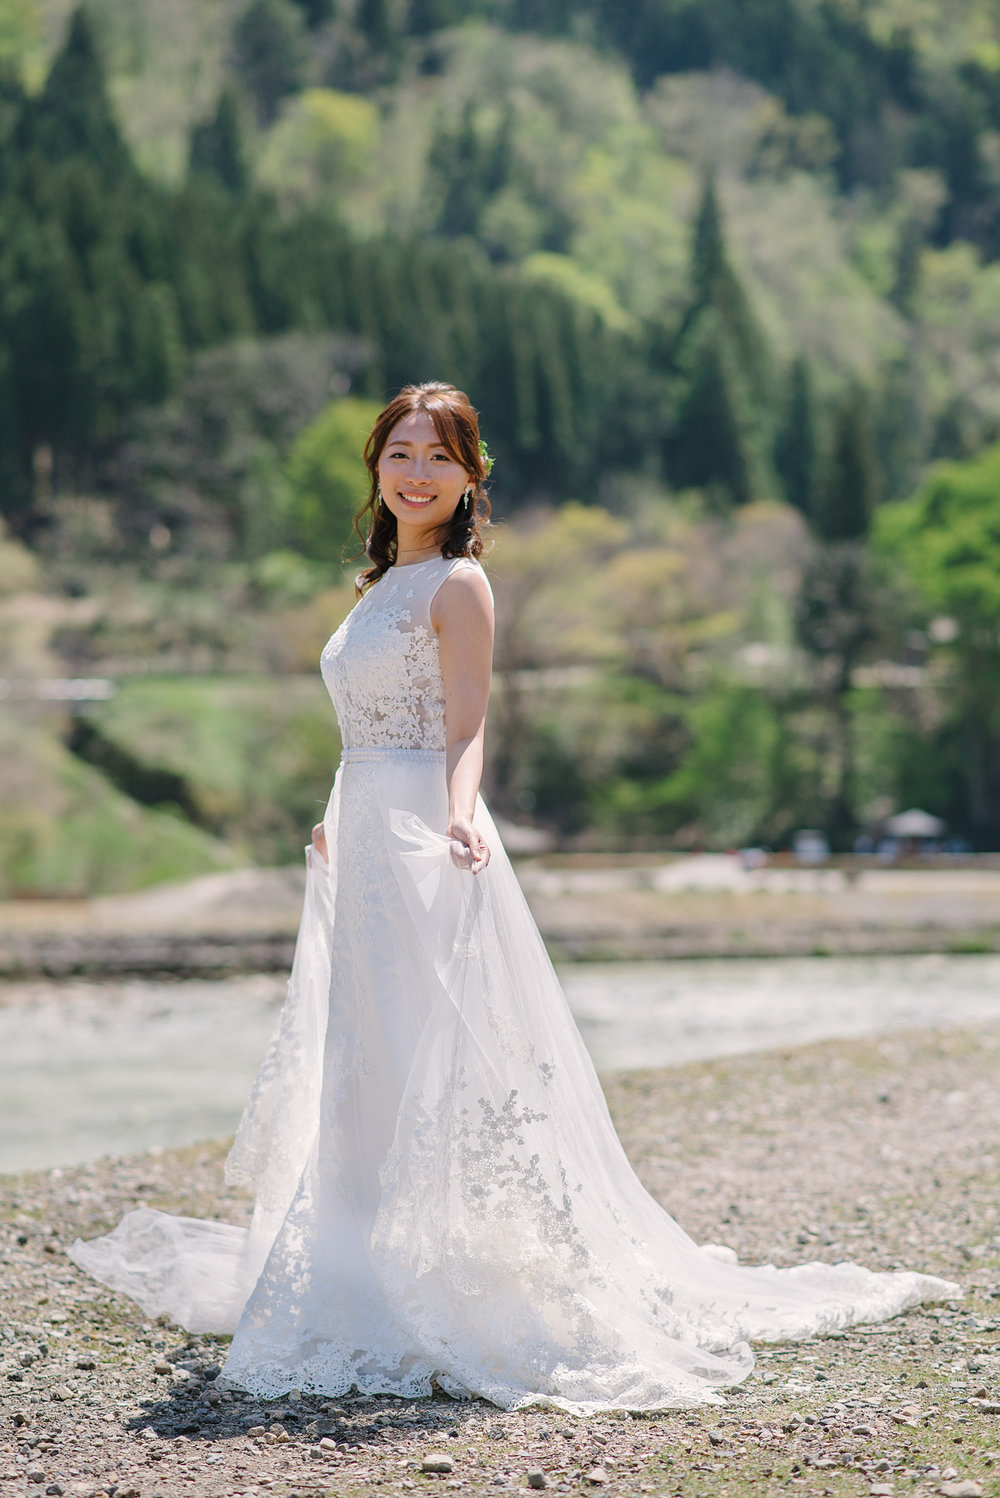 shirakawago_prewedding-24.jpg